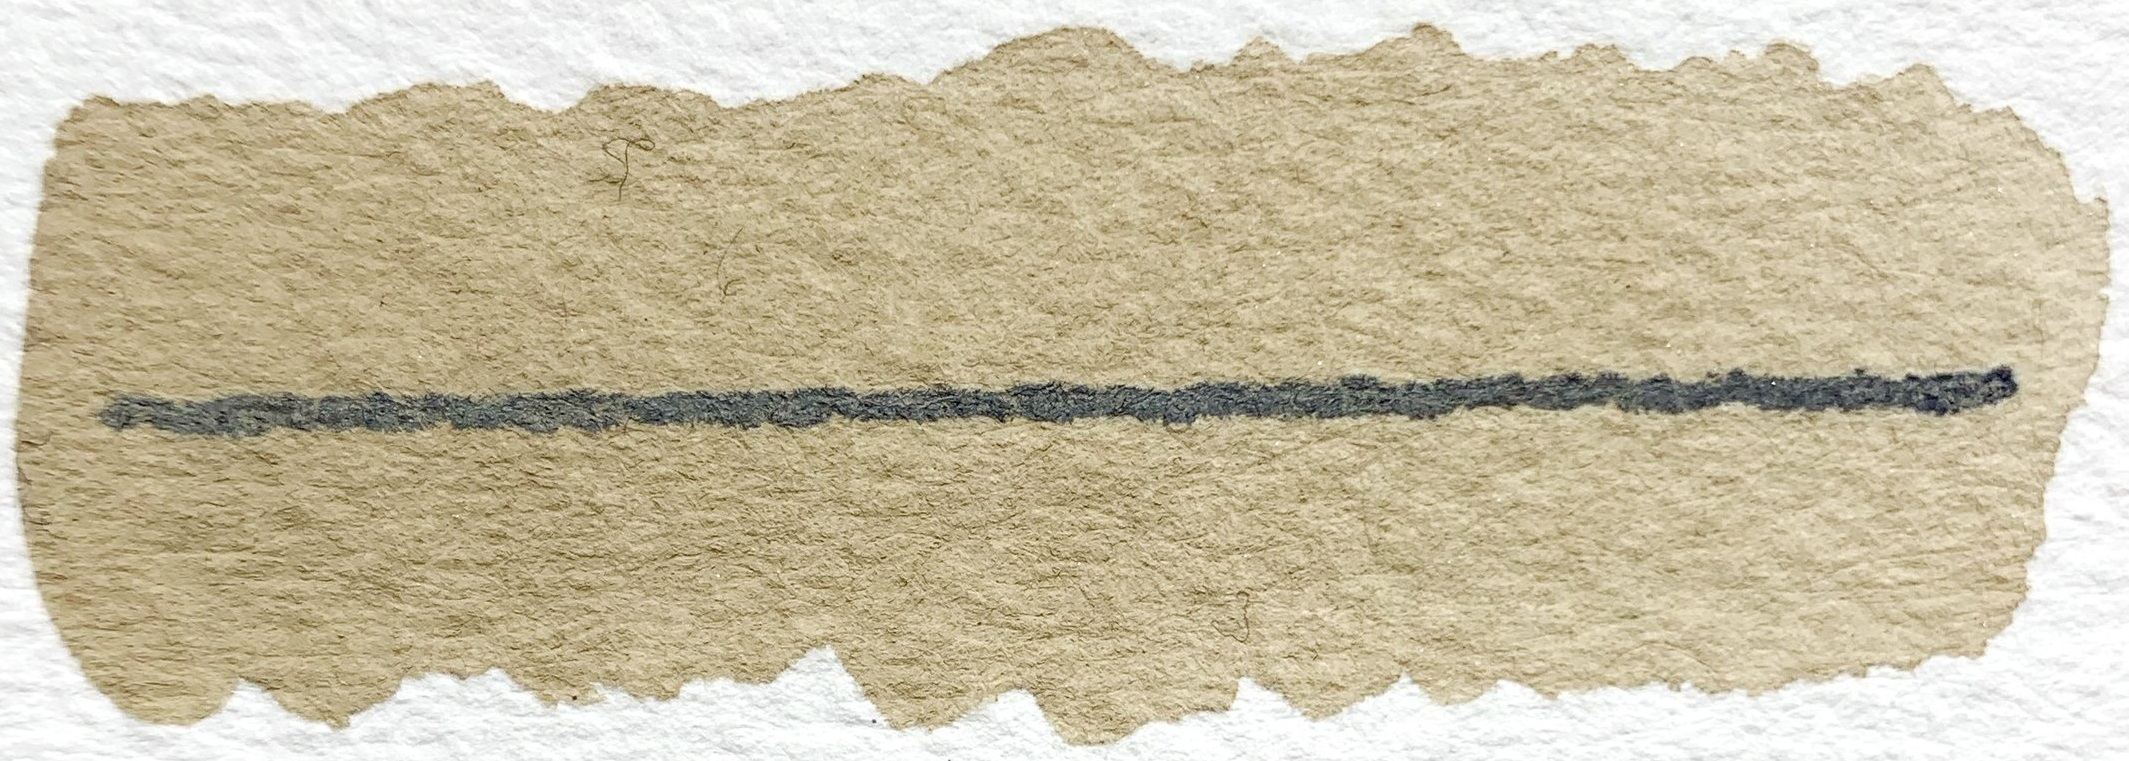 Gingerbread - Buff titanium, opaque, excellent lightfastness, non-staining